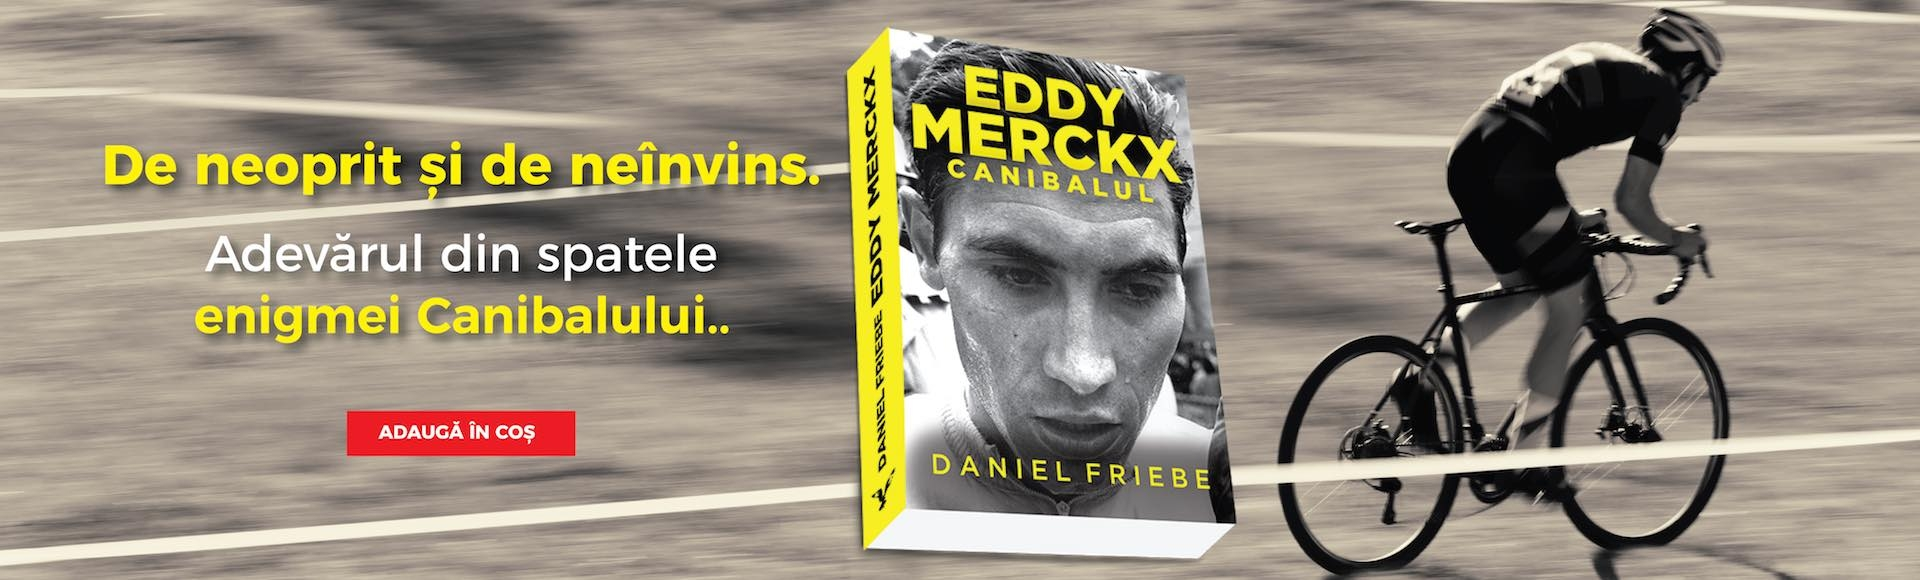 Eddy Merckx | Daniel Friebe